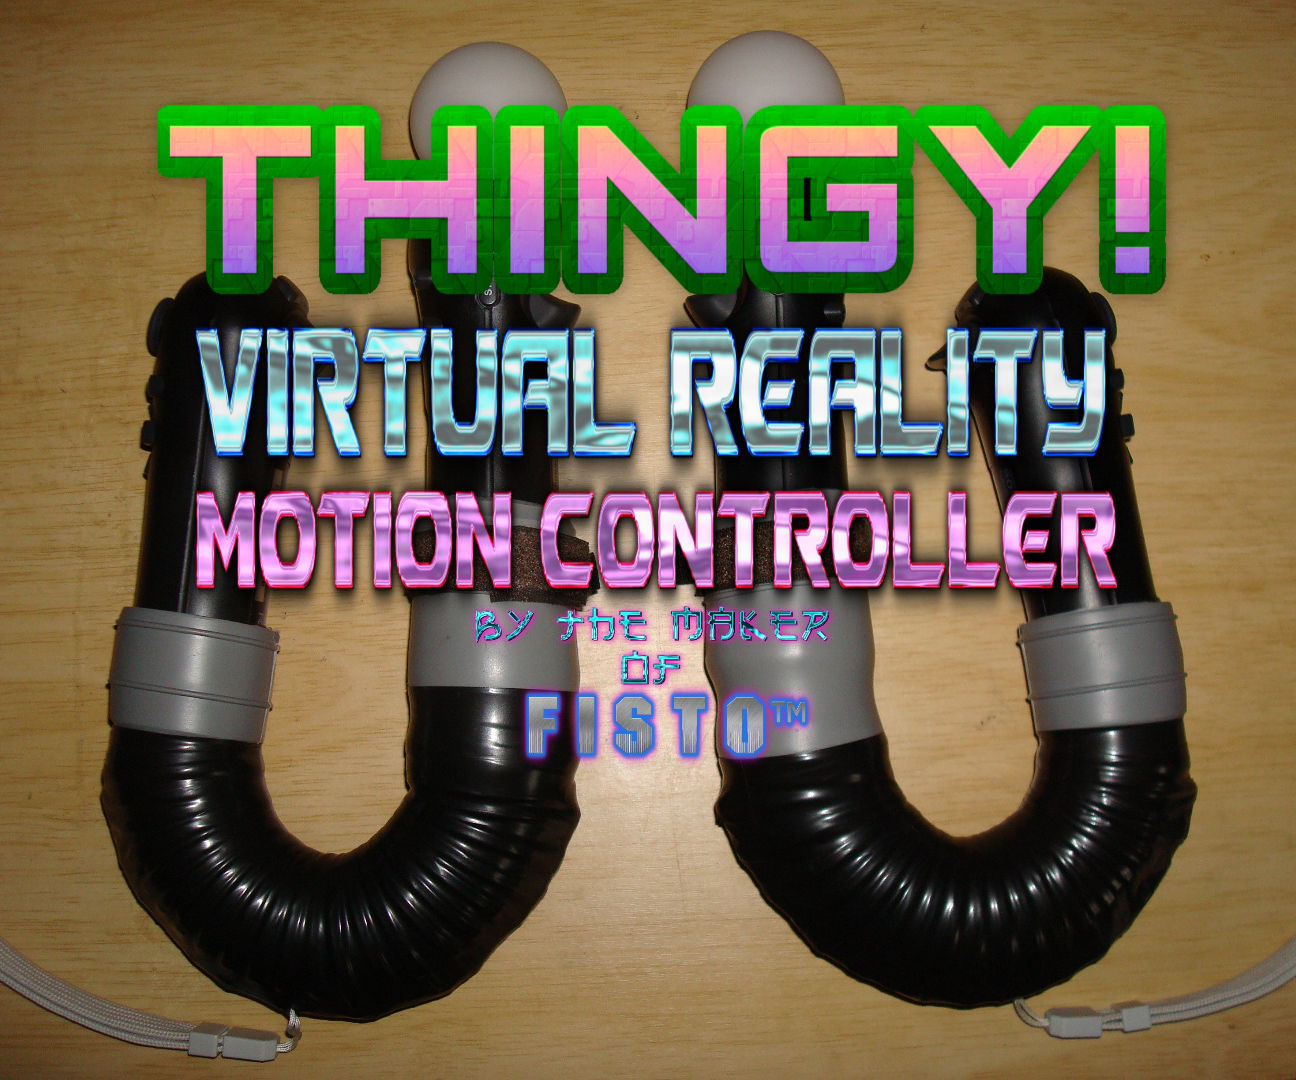 SONY Move 4 PC THINGY! Virtual Reality Motion Controller $15